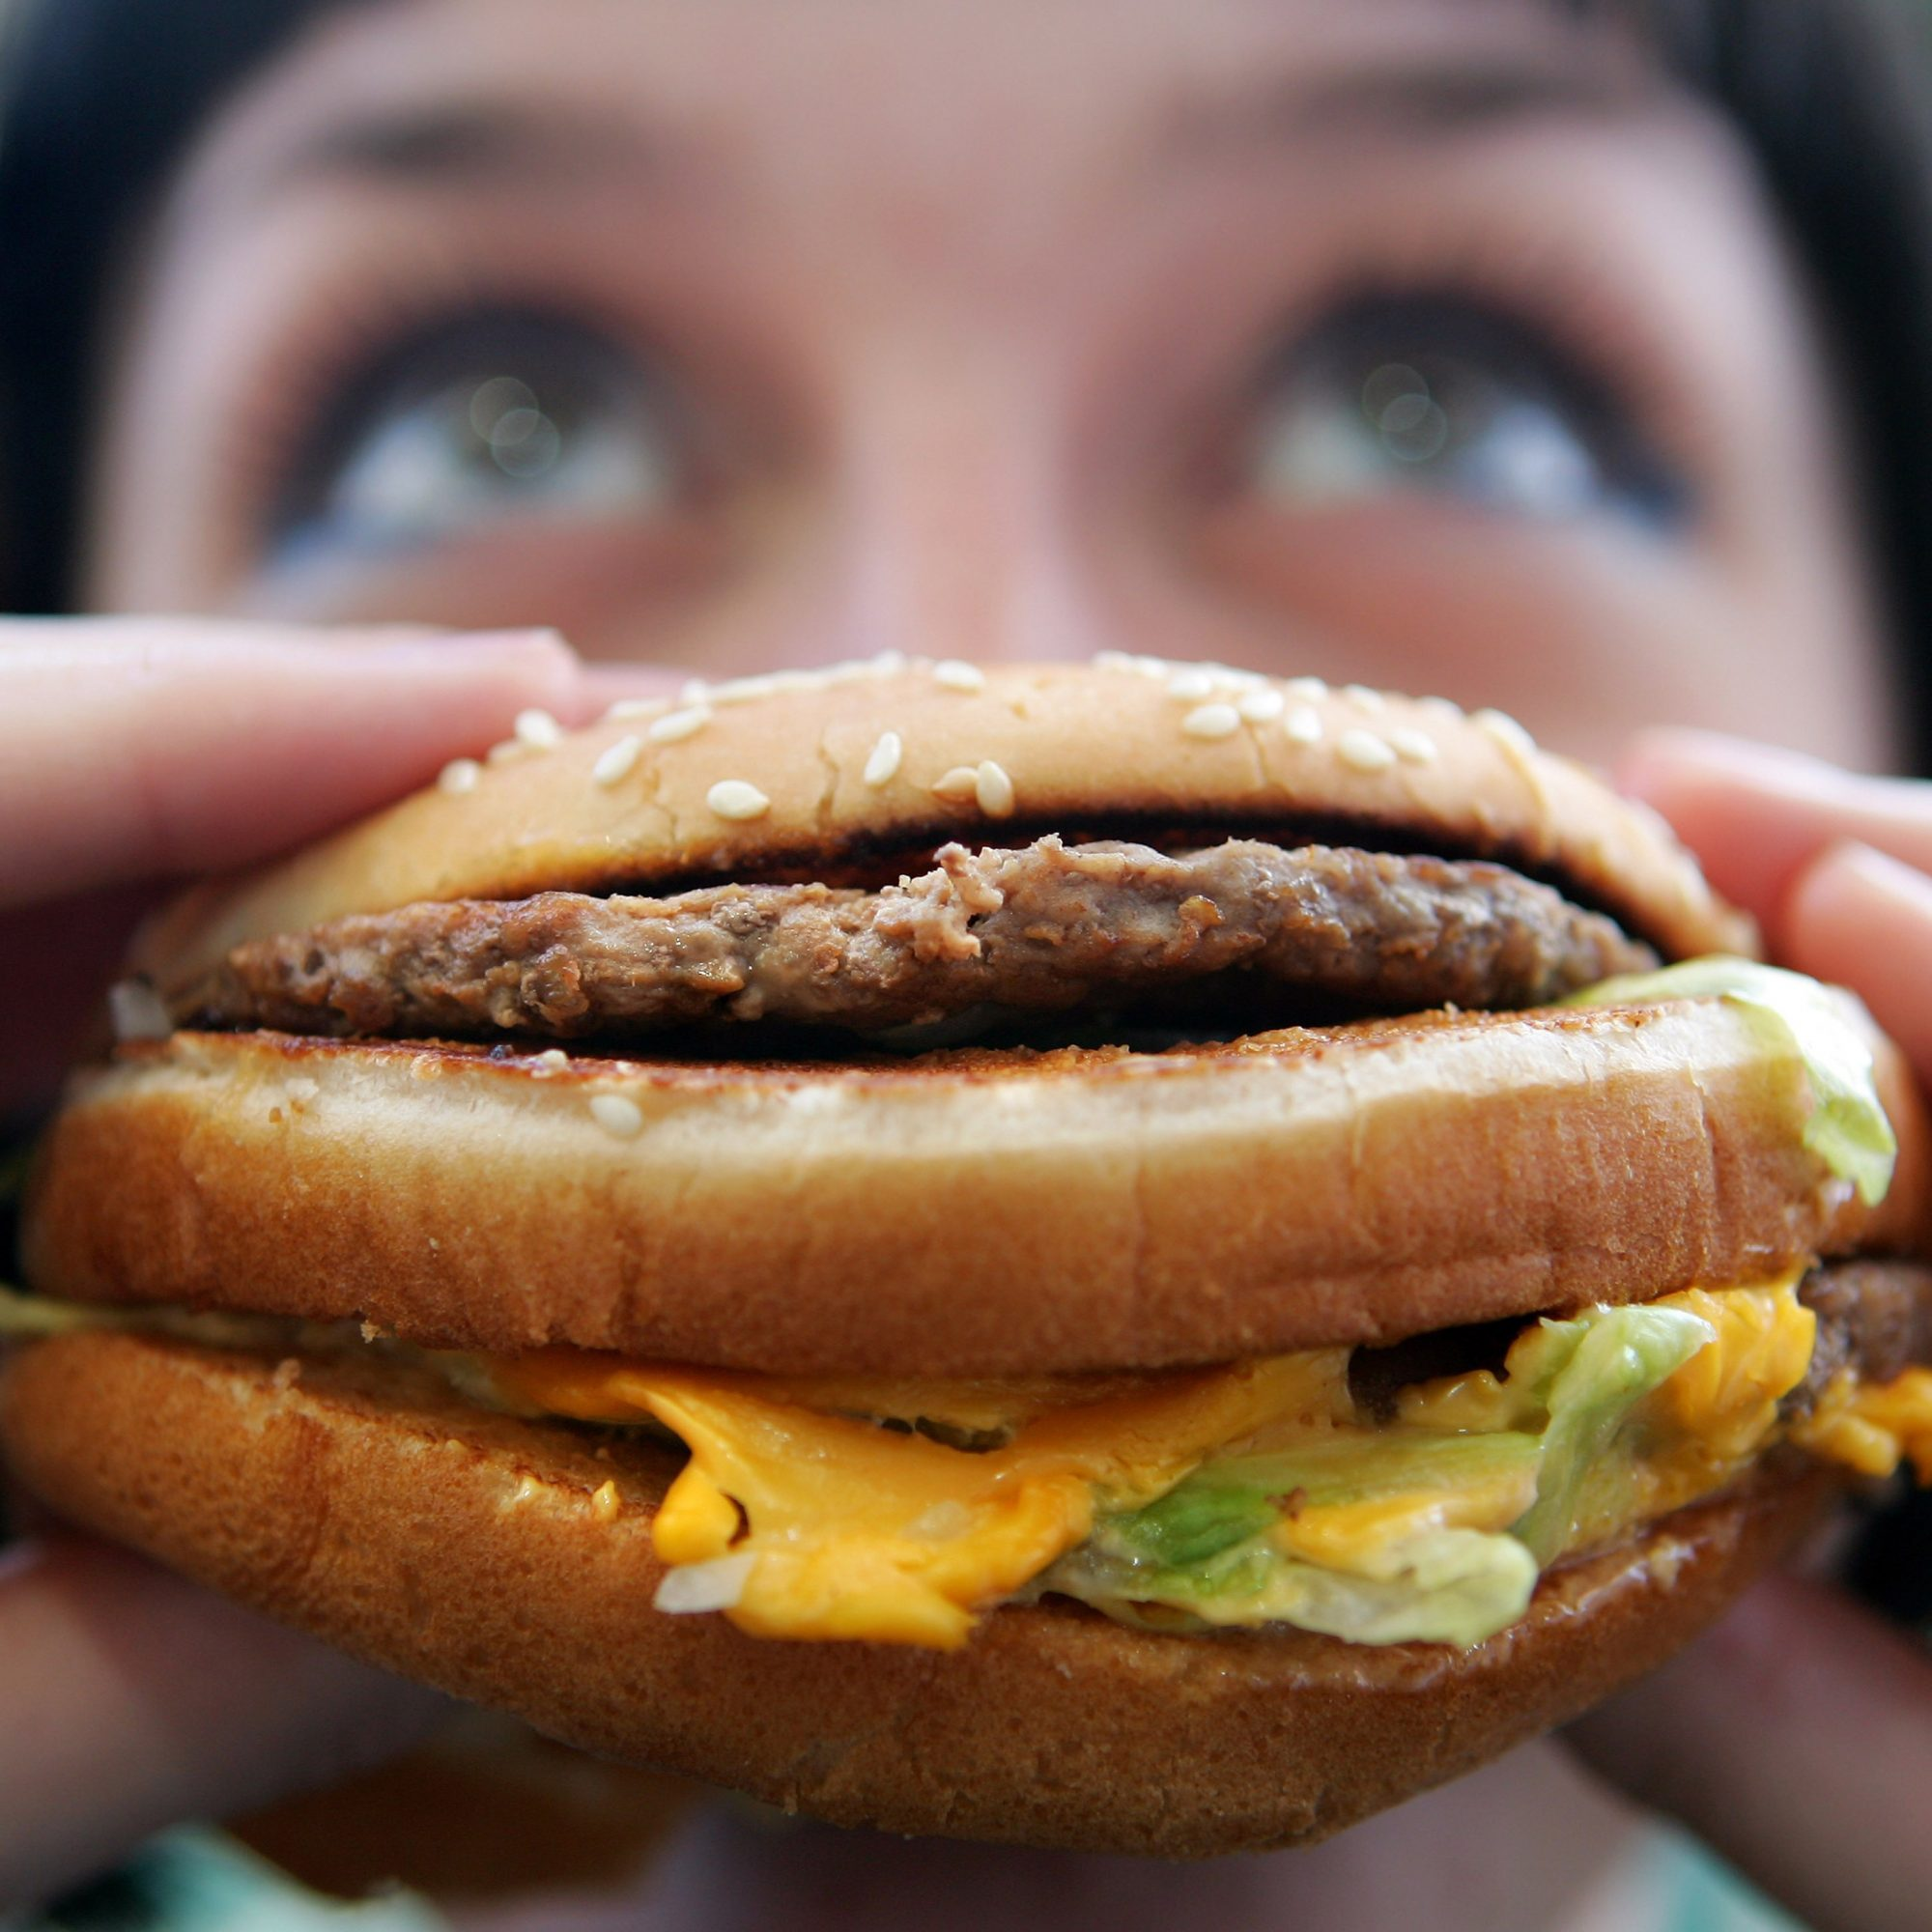 big-mac-millennials-fwx